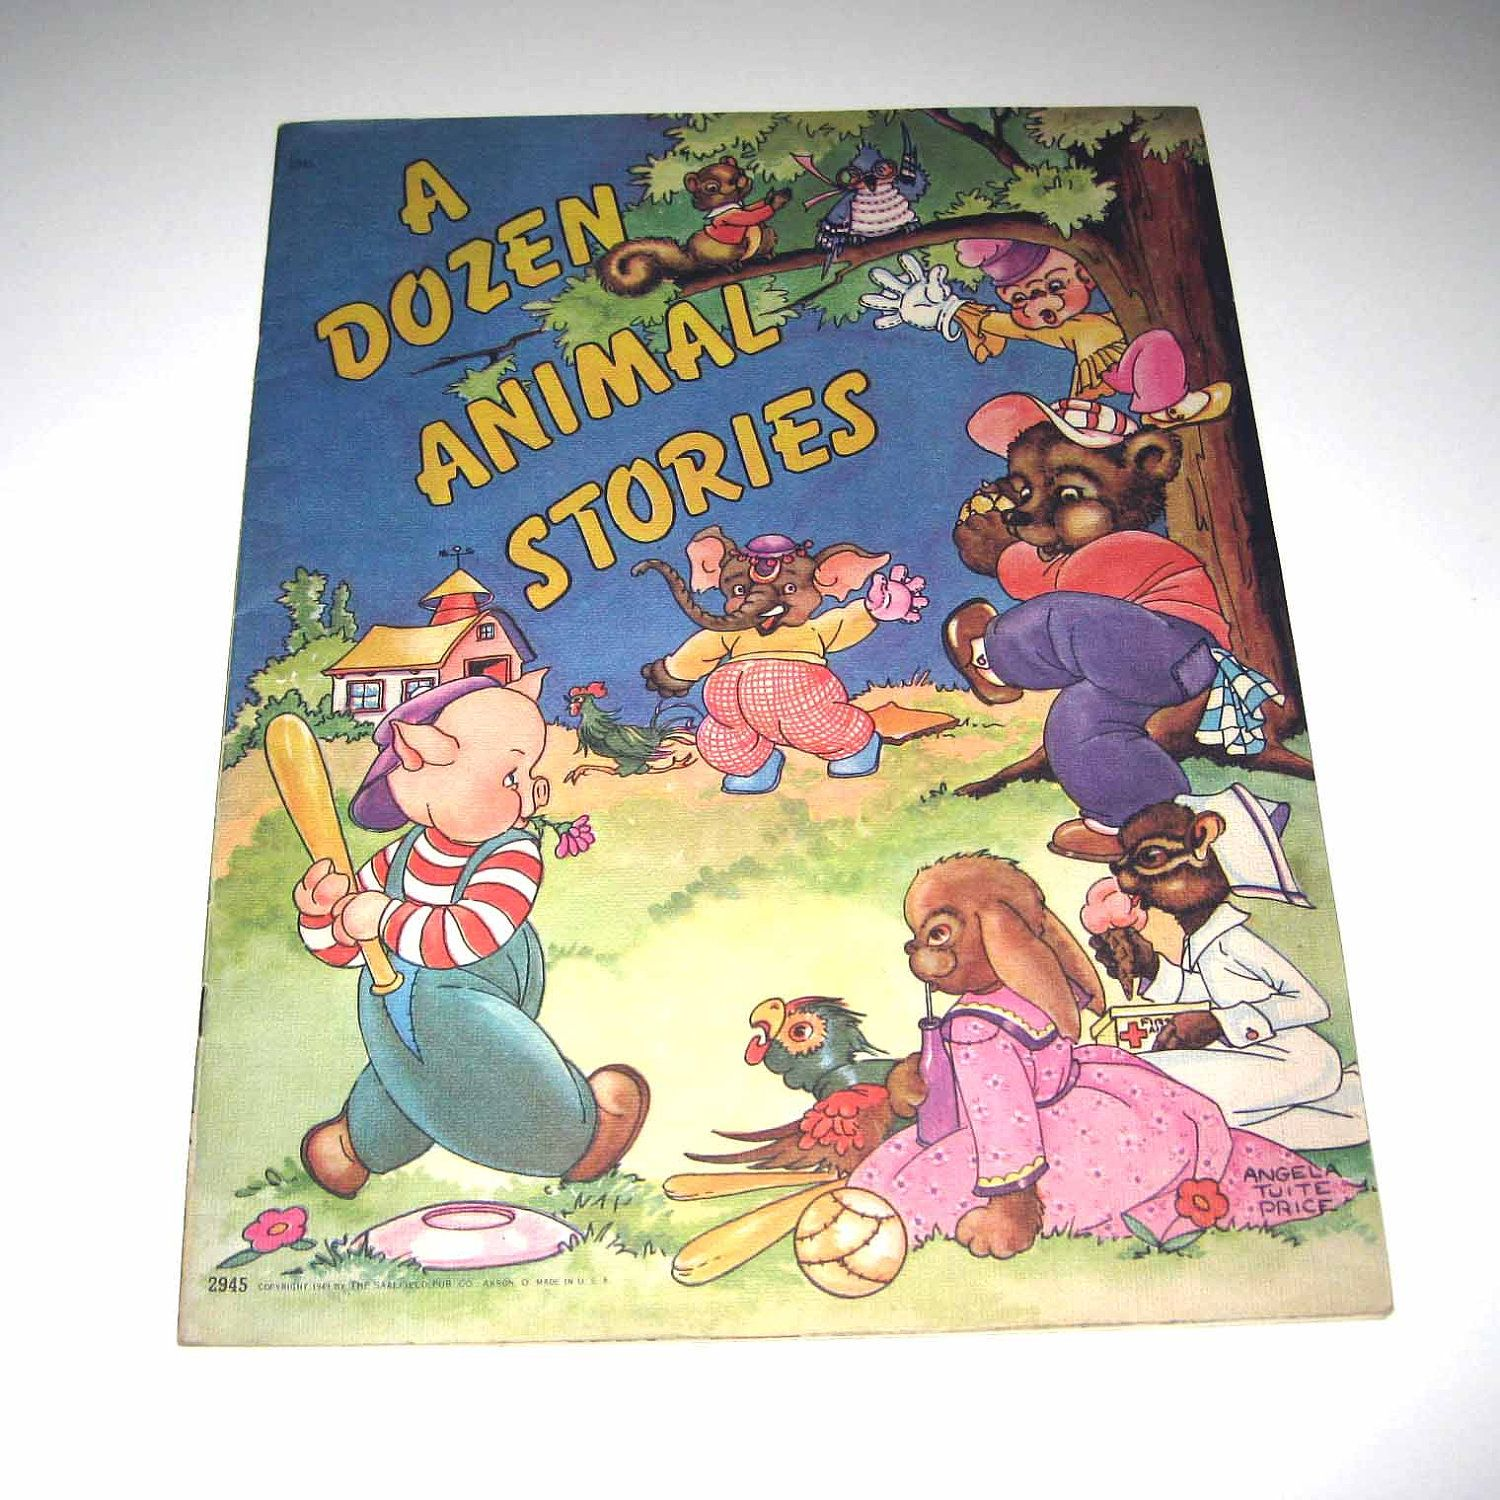 """""""A Dozen Animal Stories"""" 1940s book by Saalfield. Illustrated by Angela Tuit Price. Via Etsy."""